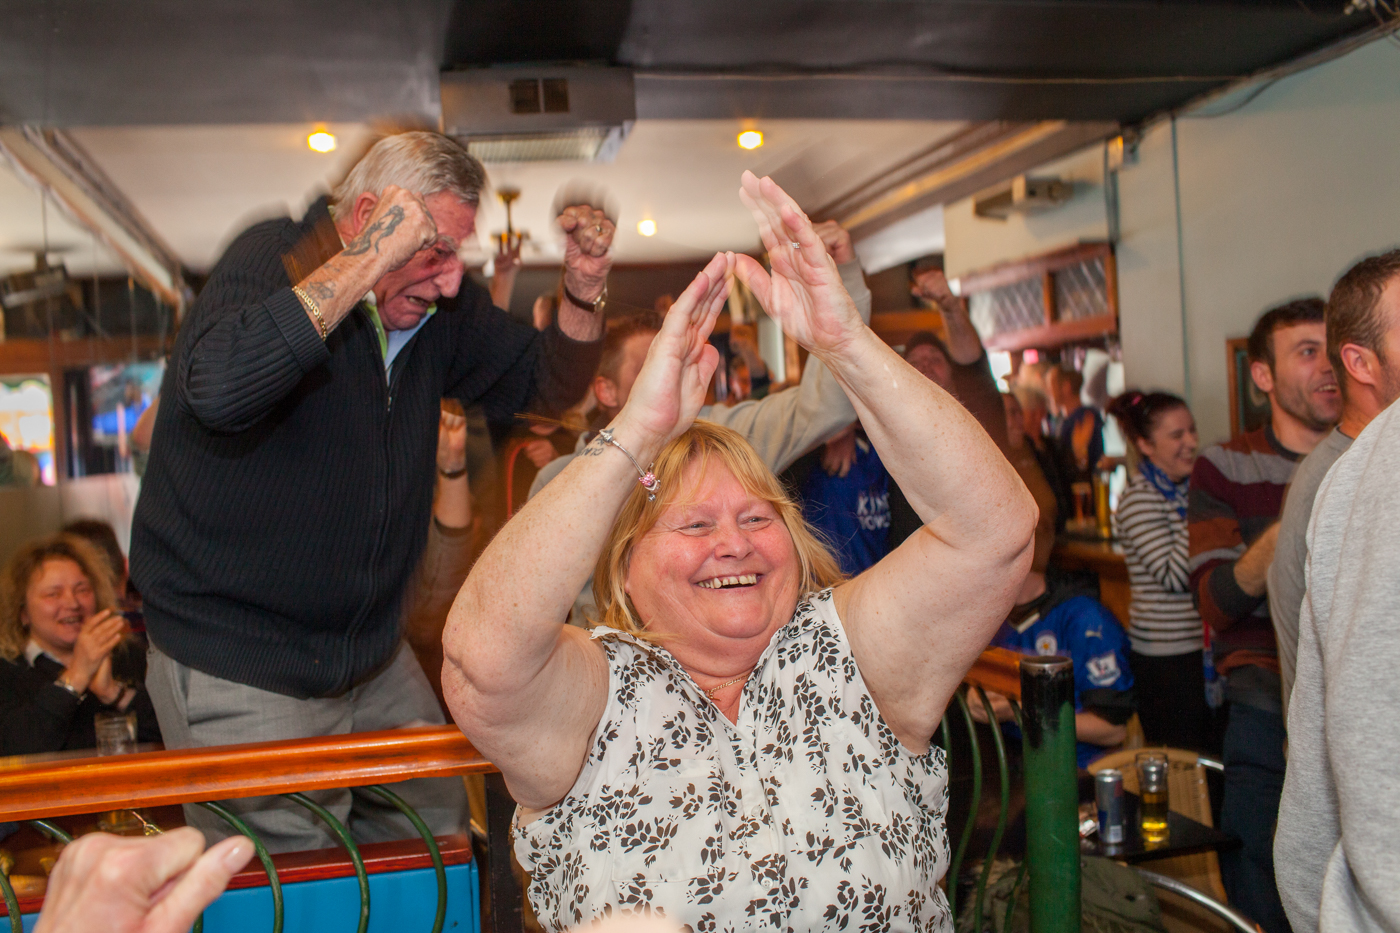 LEICESTER, UK MAY 2016Leicester City football fans watch their team playing away at MAnchester United on the television in the Oasis Bar located on Narborough Road.Narborough Road, one of the main avenues into the city, was named the most diverse street in Britain by researchers. Shopkeepers and small business owners from 23 nations work there.On the 2nd May 2016, Leicester City football club became champions of England for the first time in their 132 year history.Leicester has been dubbed as most multicultural diversified city in England, thanks to scores of people that have flocked the city and who have hailed from different parts of the world. According to the Leicester city council, the city has the highest number of immigrants who have sought both temporary and permanent residence in England. Majority of these immigrants are people who have left their home countries in pursuit of job opportunities in England.  Photo by Peter Dench/Getty Images Assignment for ESPN